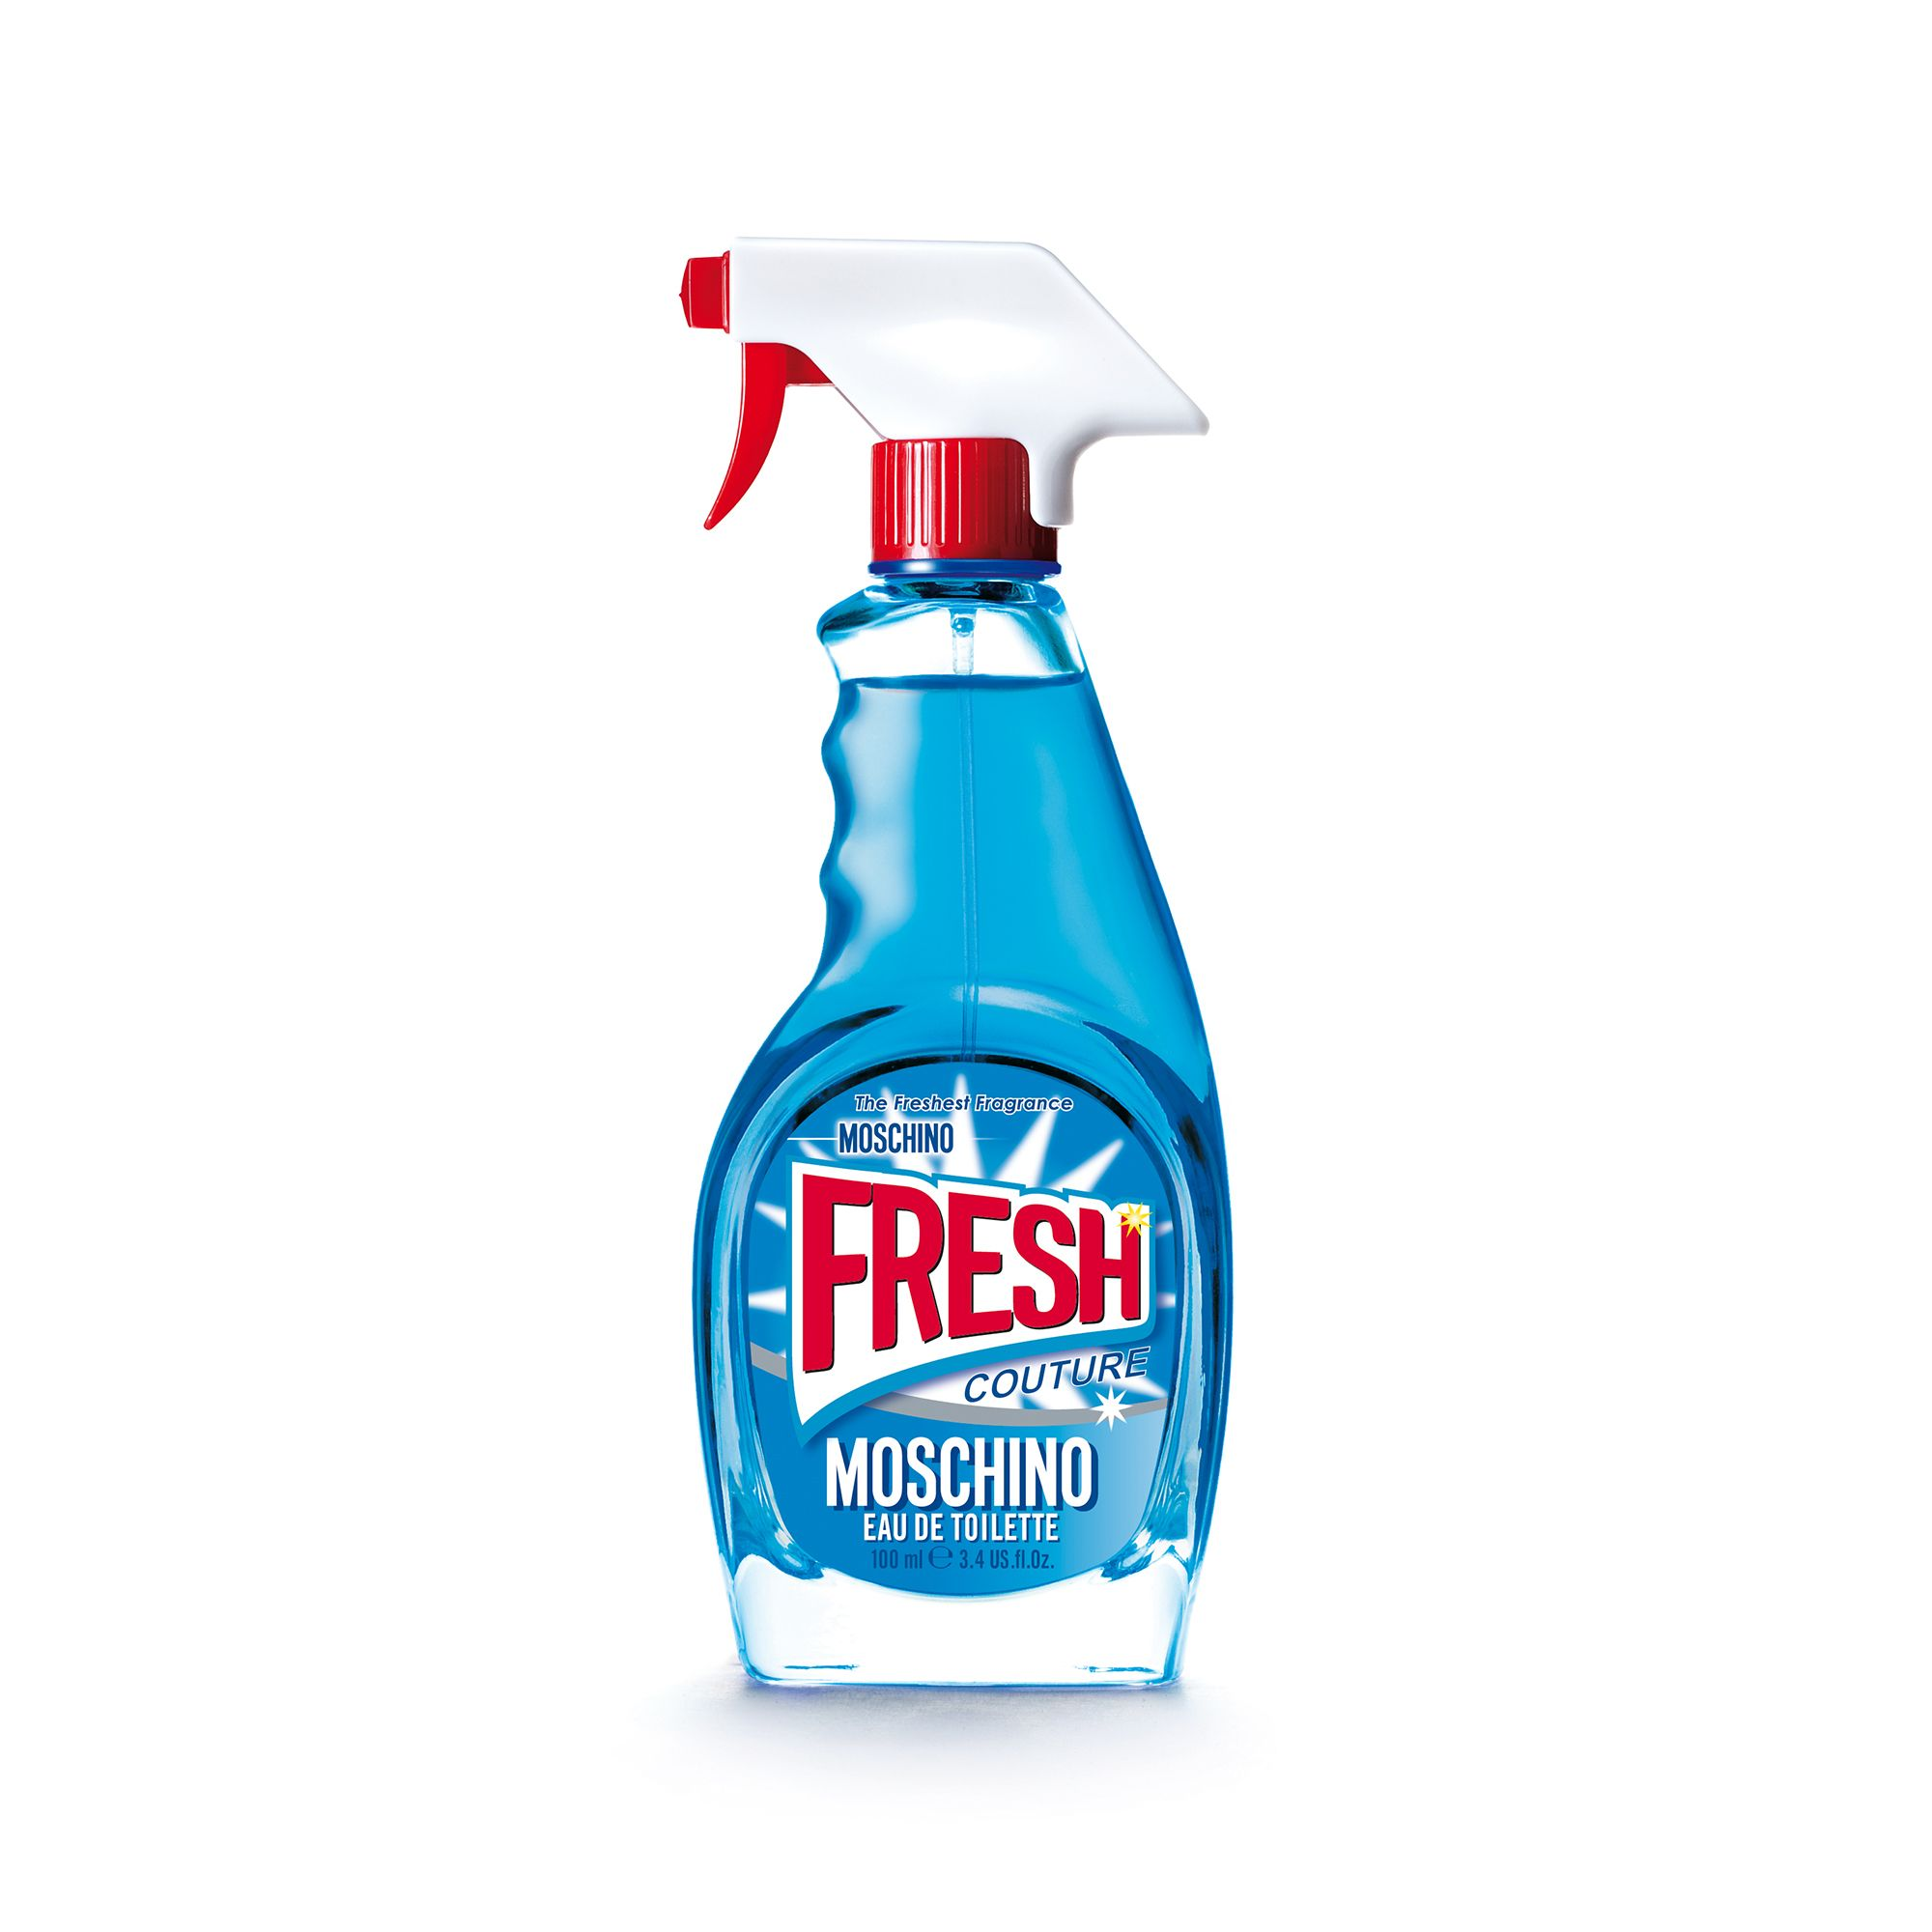 Moschino Moschino Fresh Couture Eau de Toilette 100ml